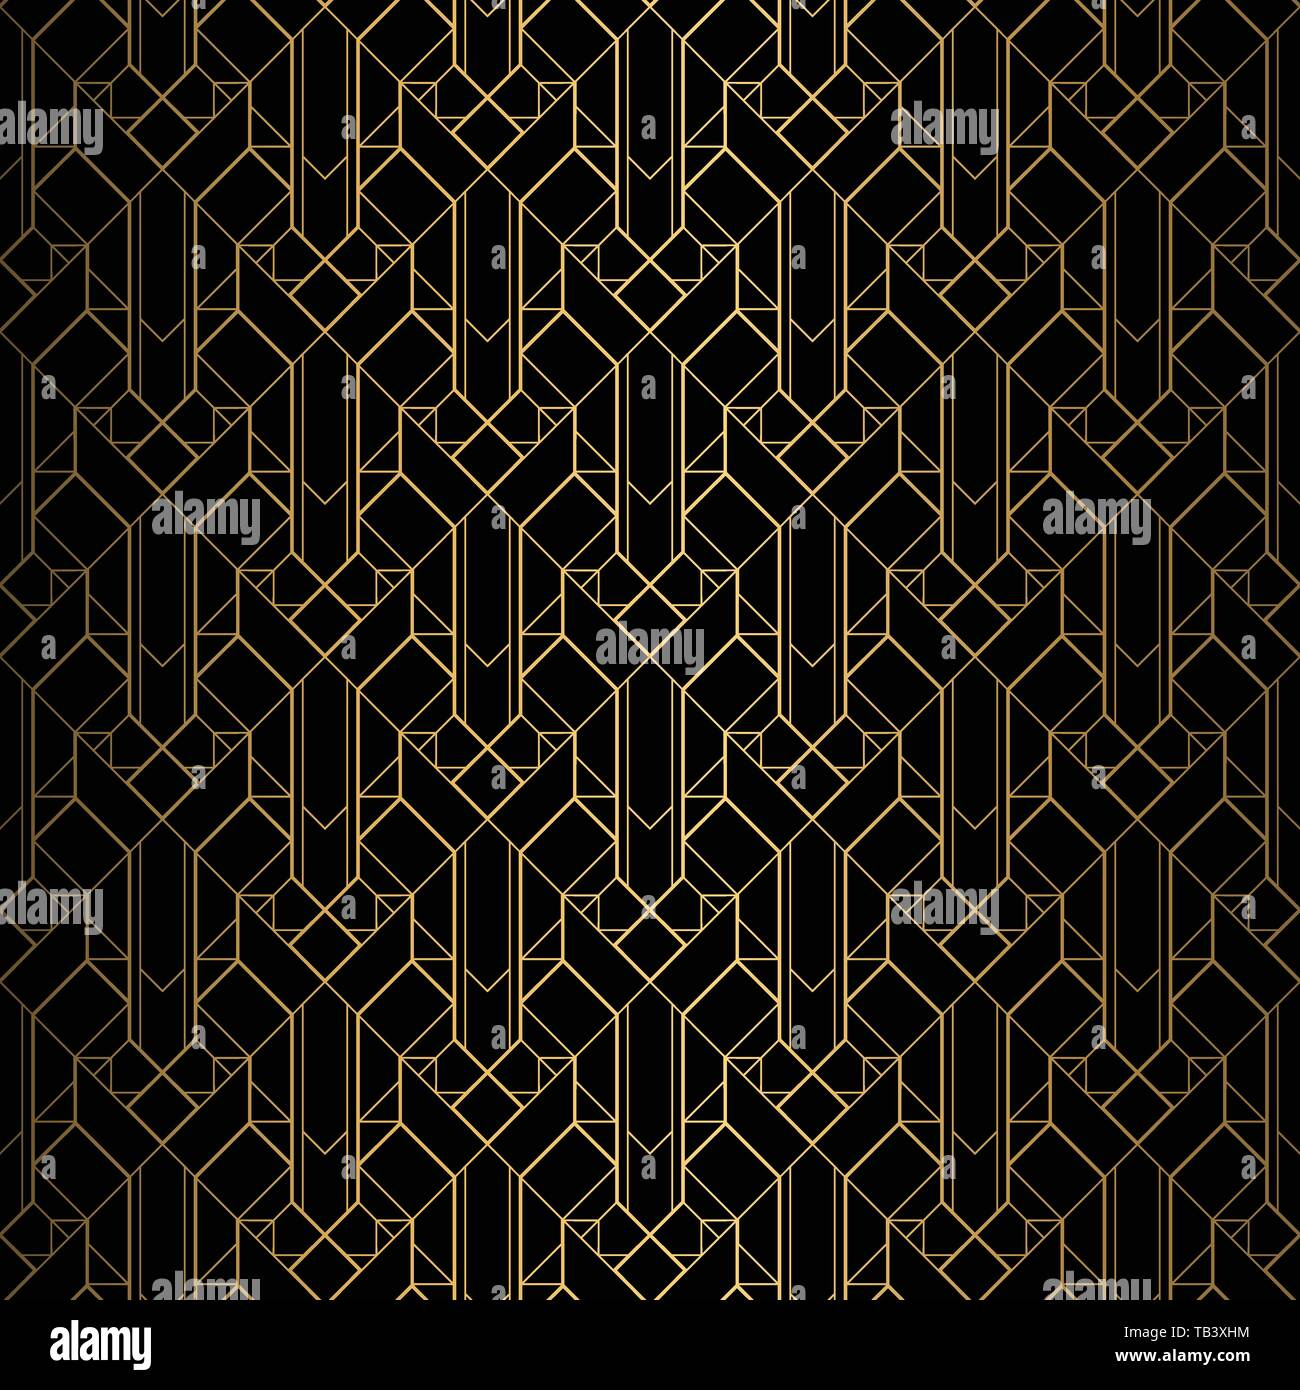 Terrific Art Deco Pattern Seamless Black And Gold Background Download Free Architecture Designs Grimeyleaguecom